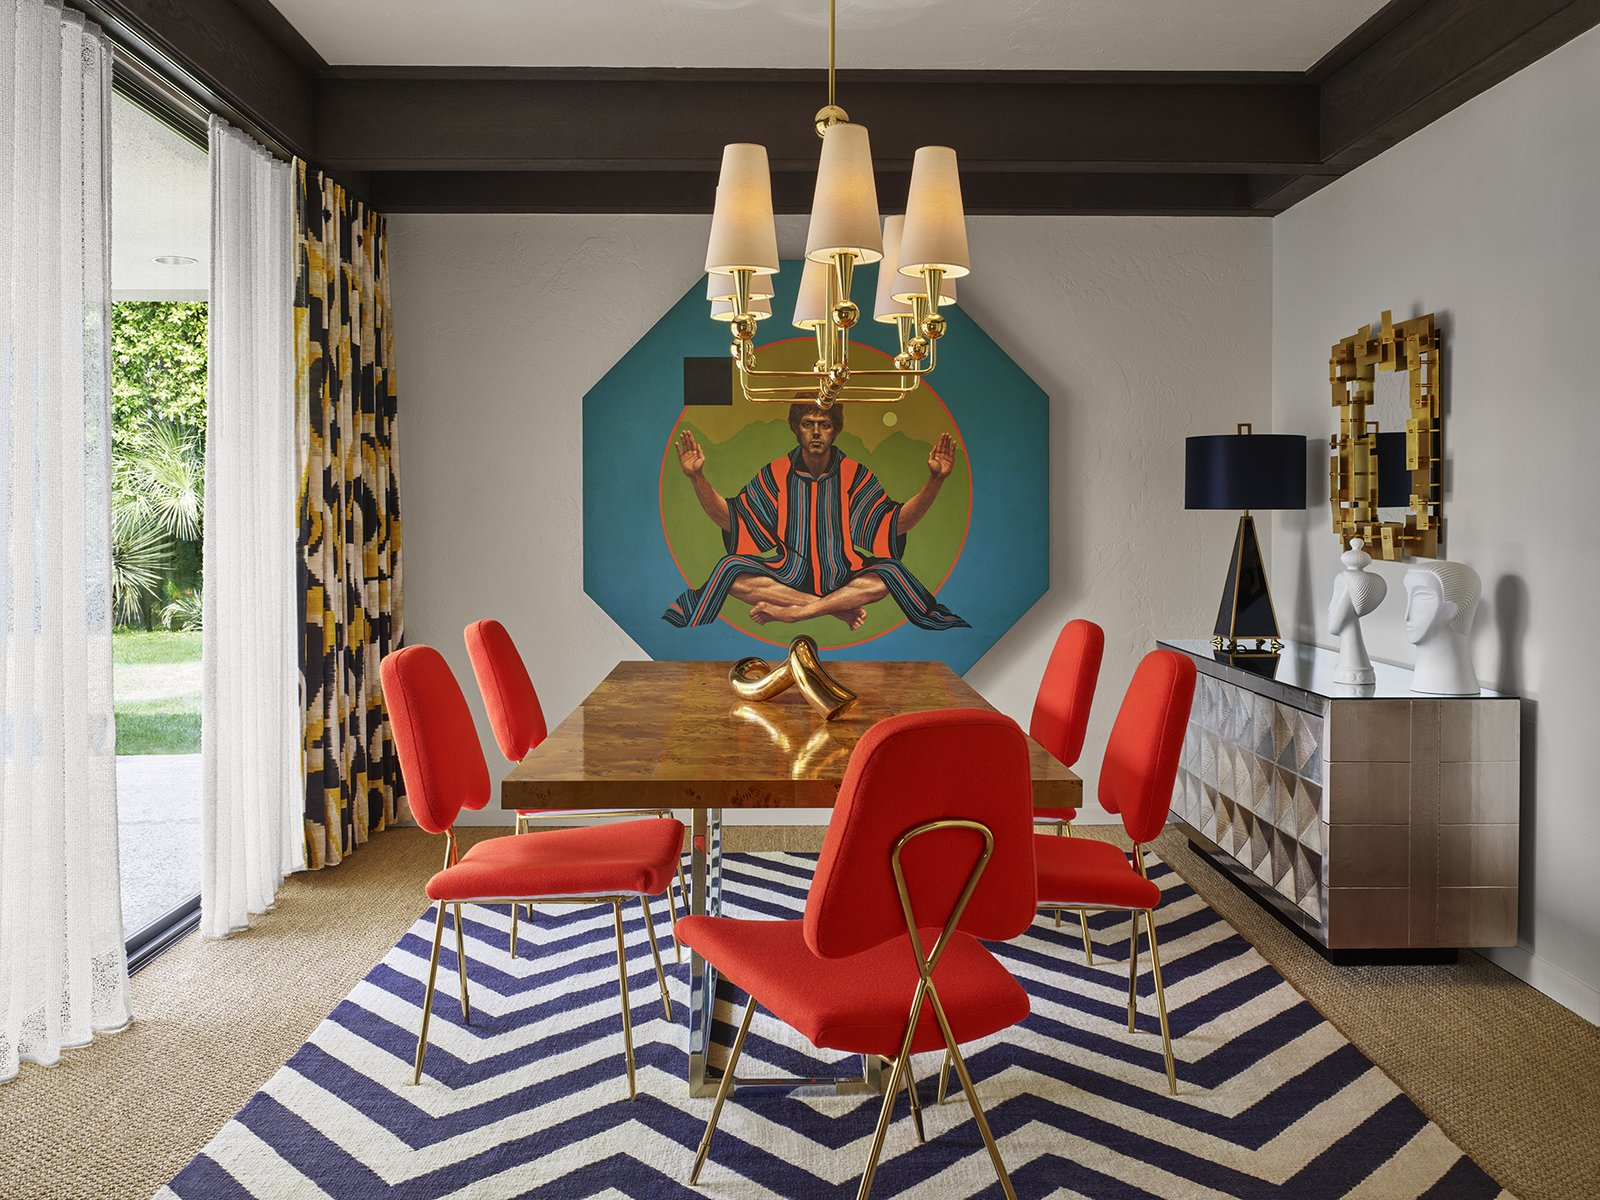 Photo 6 of 7 in jonathan adler reveals his redesign of the parker dining room storage chair table rug floor pendant lighting and aloadofball Gallery